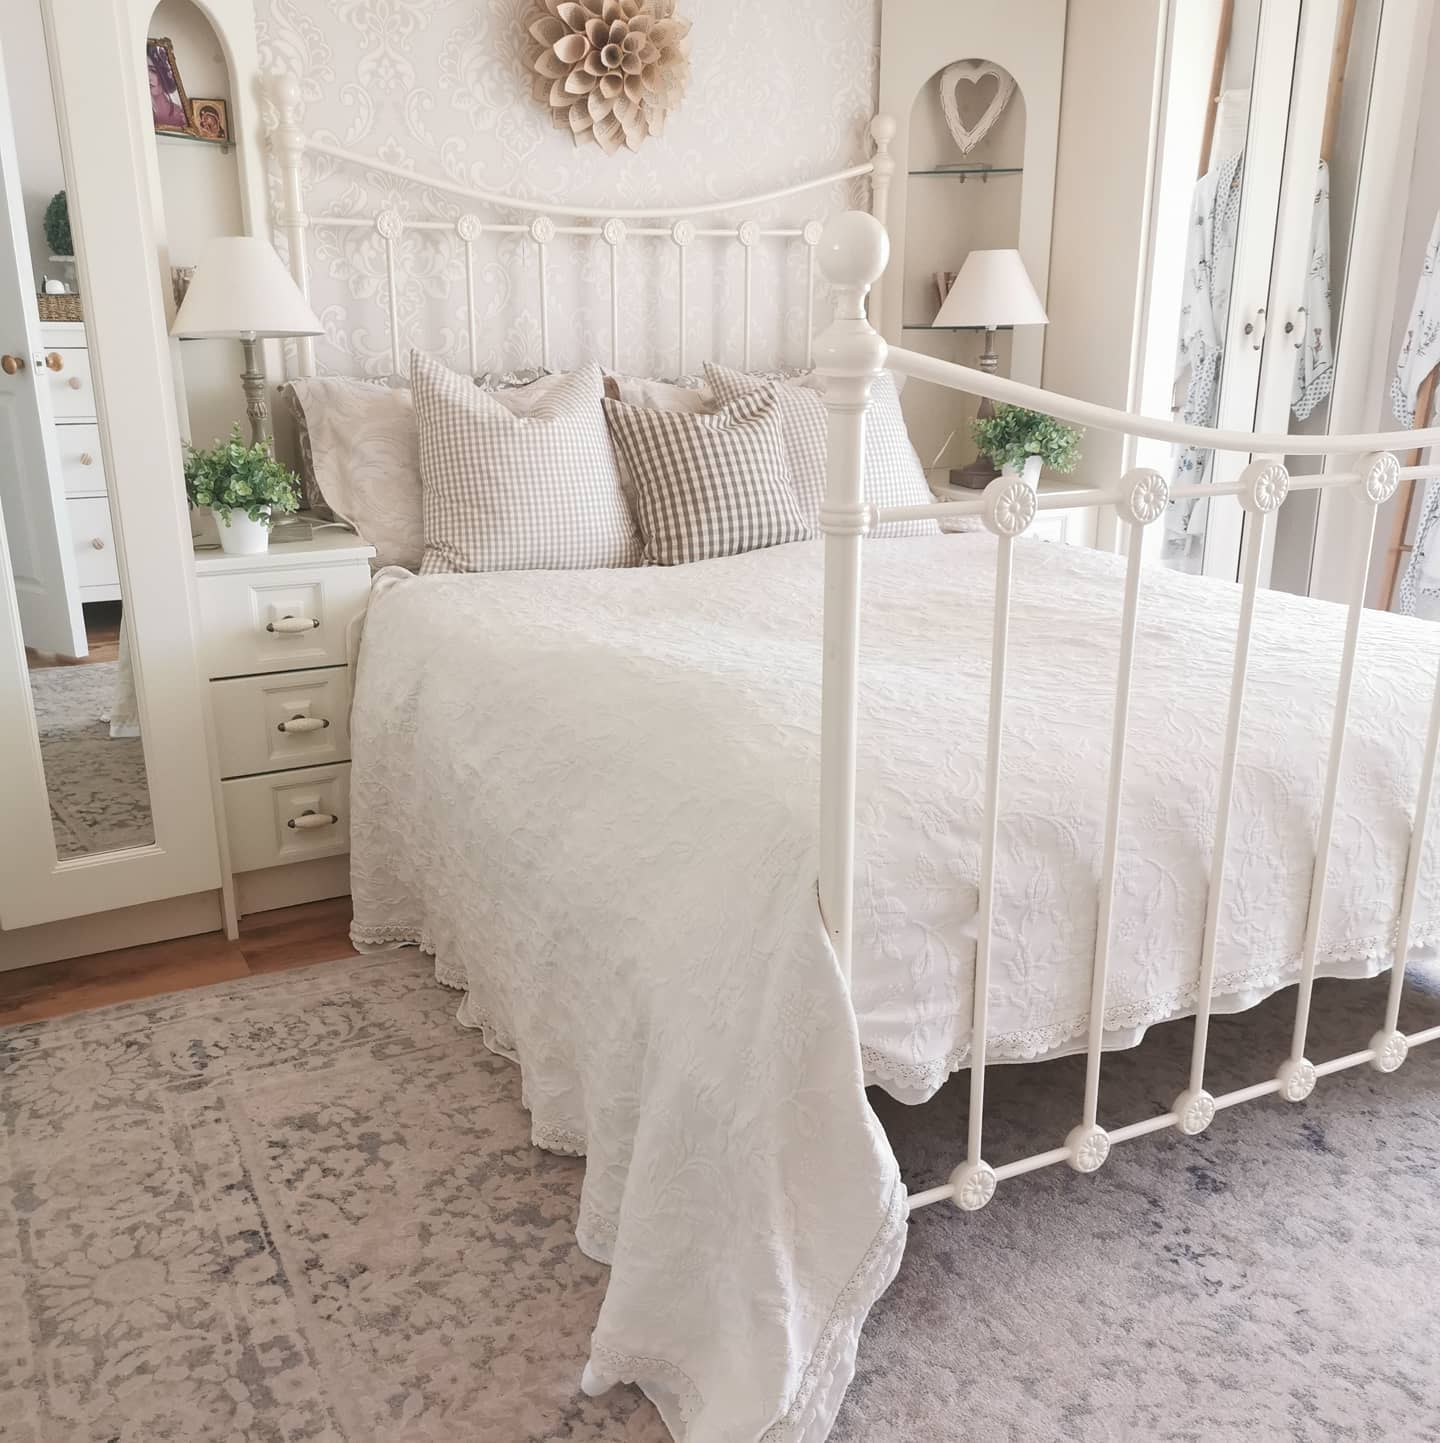 Iron Bed Country Bedroom Ideas -ahappyandaproudhome